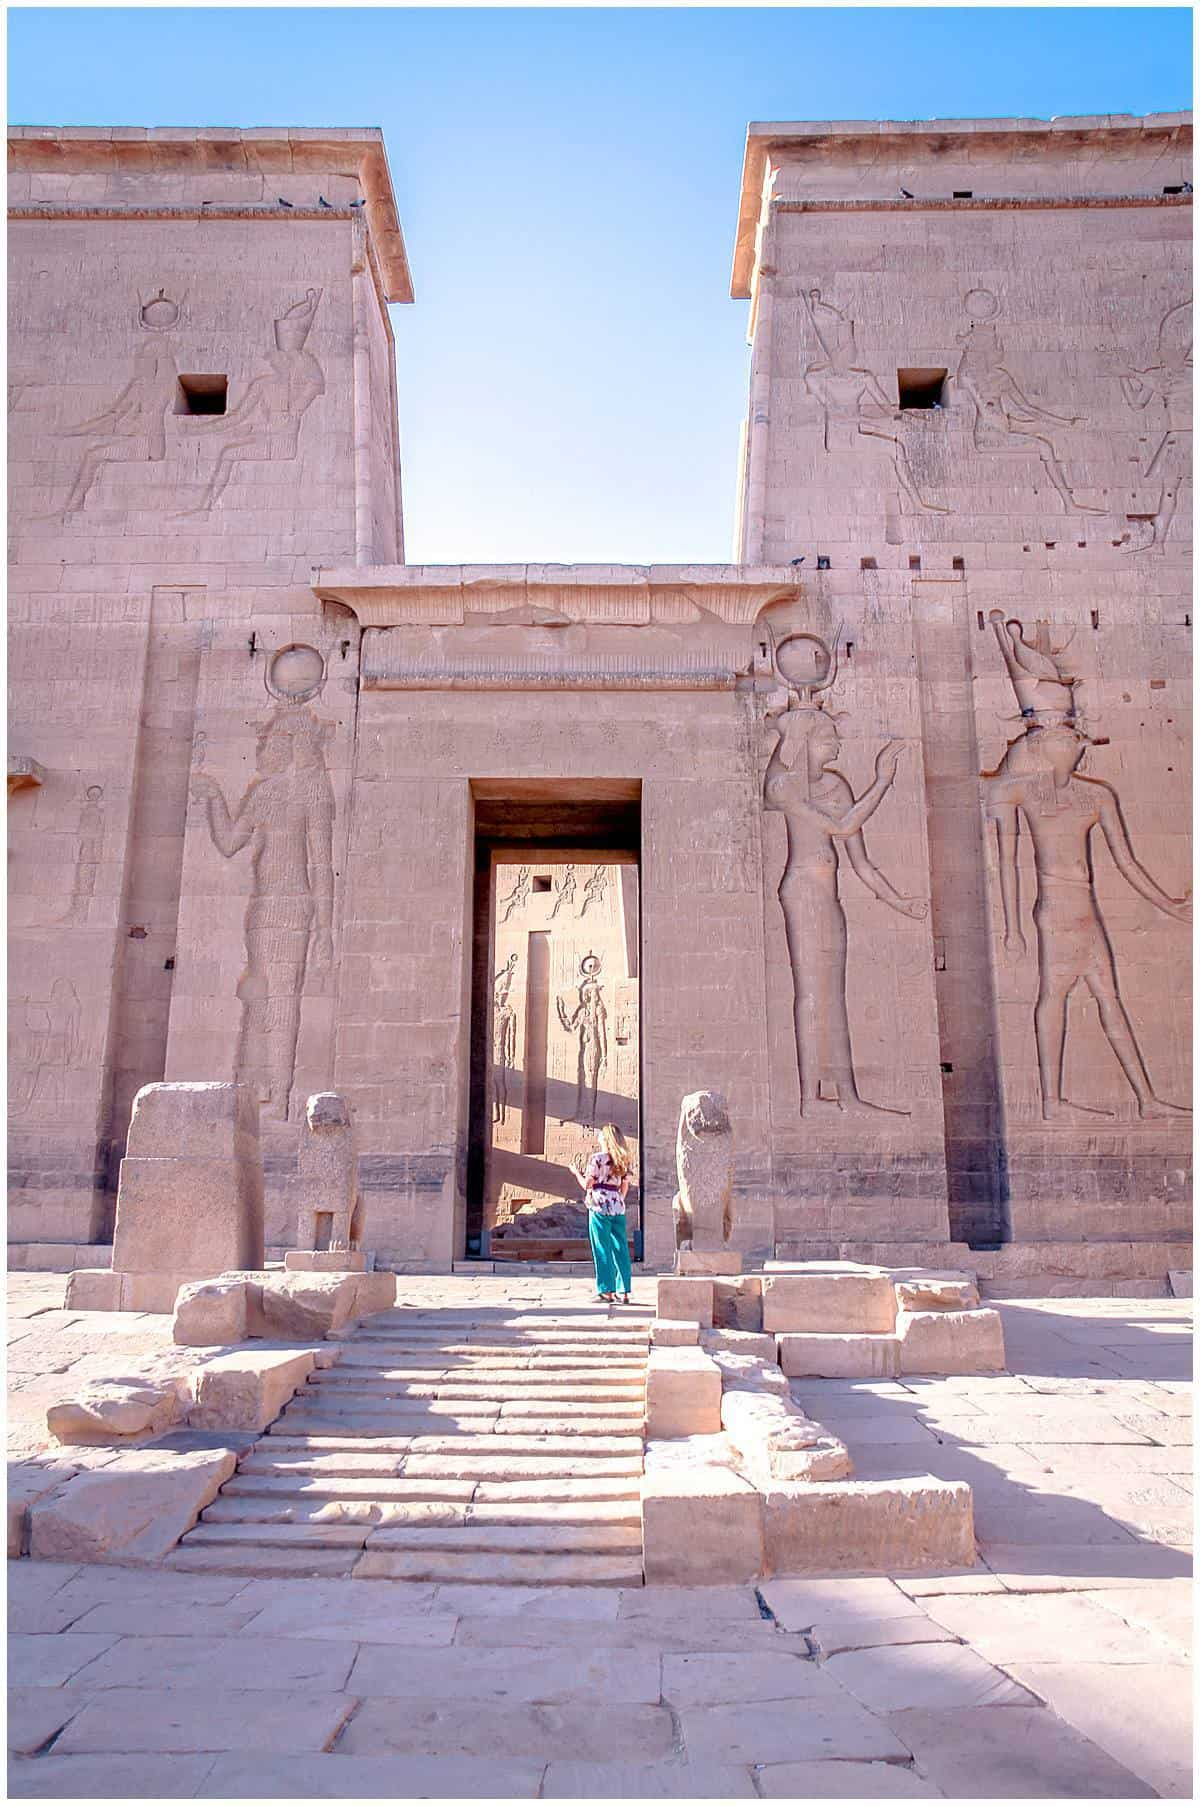 Egypt - Aswan - Philae Temple - woman standing at entrance - Abigail King travel writer